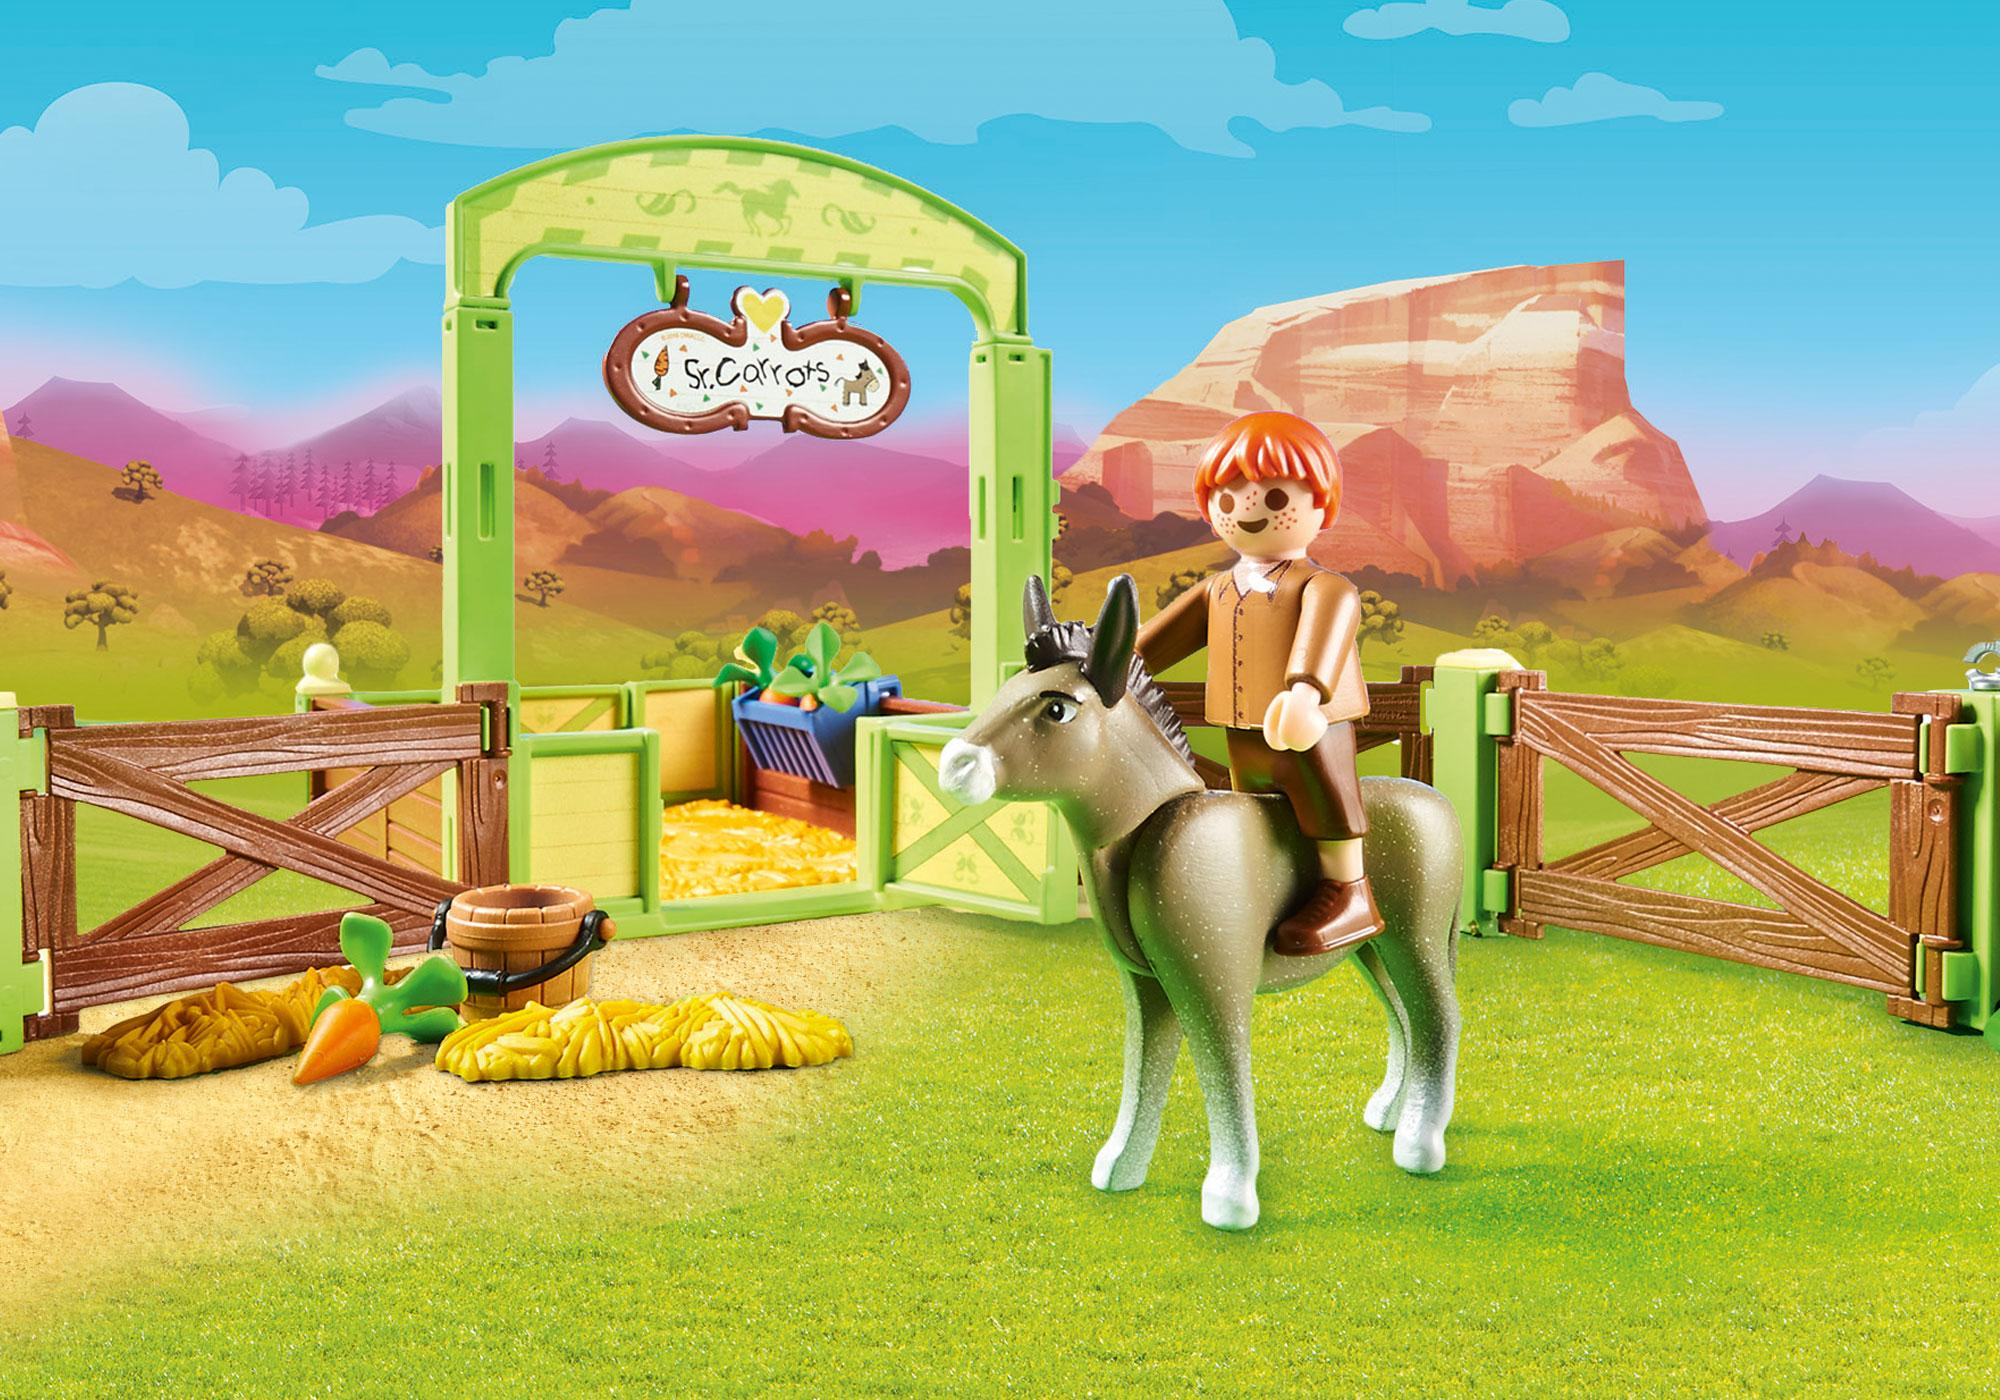 http://media.playmobil.com/i/playmobil/70120_product_extra1/Snips & Señor Carrots with Horse Stall